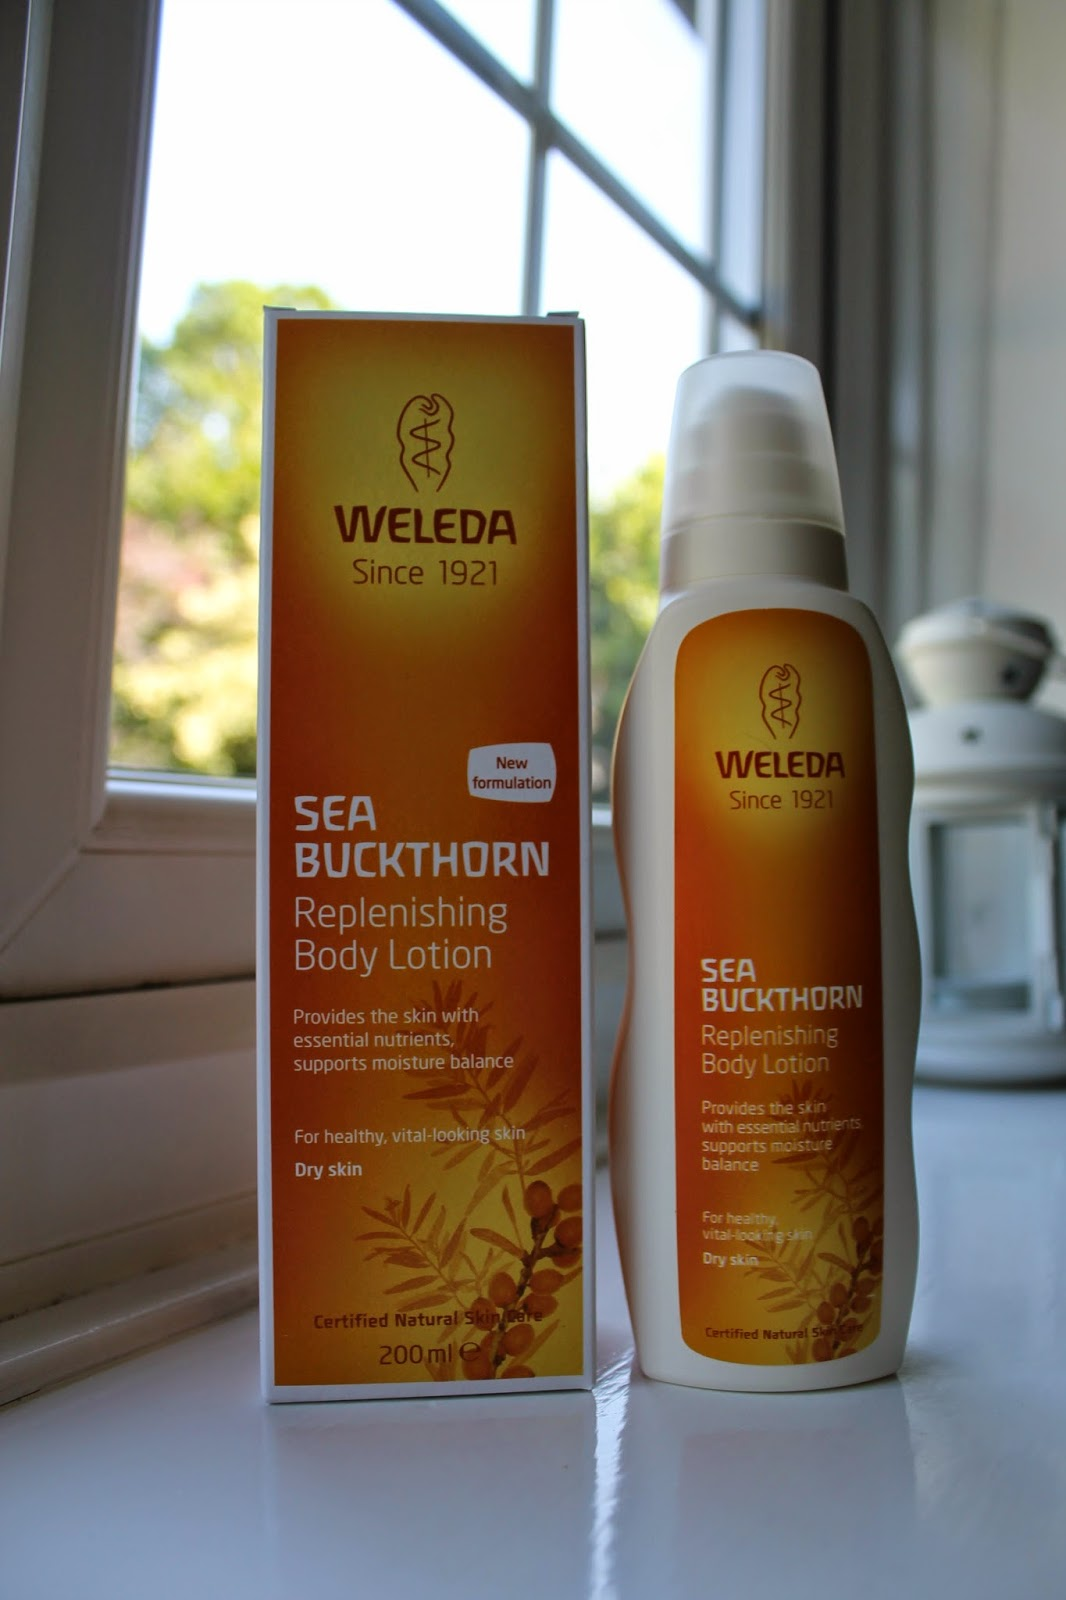 Love Me Beauty Box July 2014 Weleda Sea Buckthorn Body Lotion